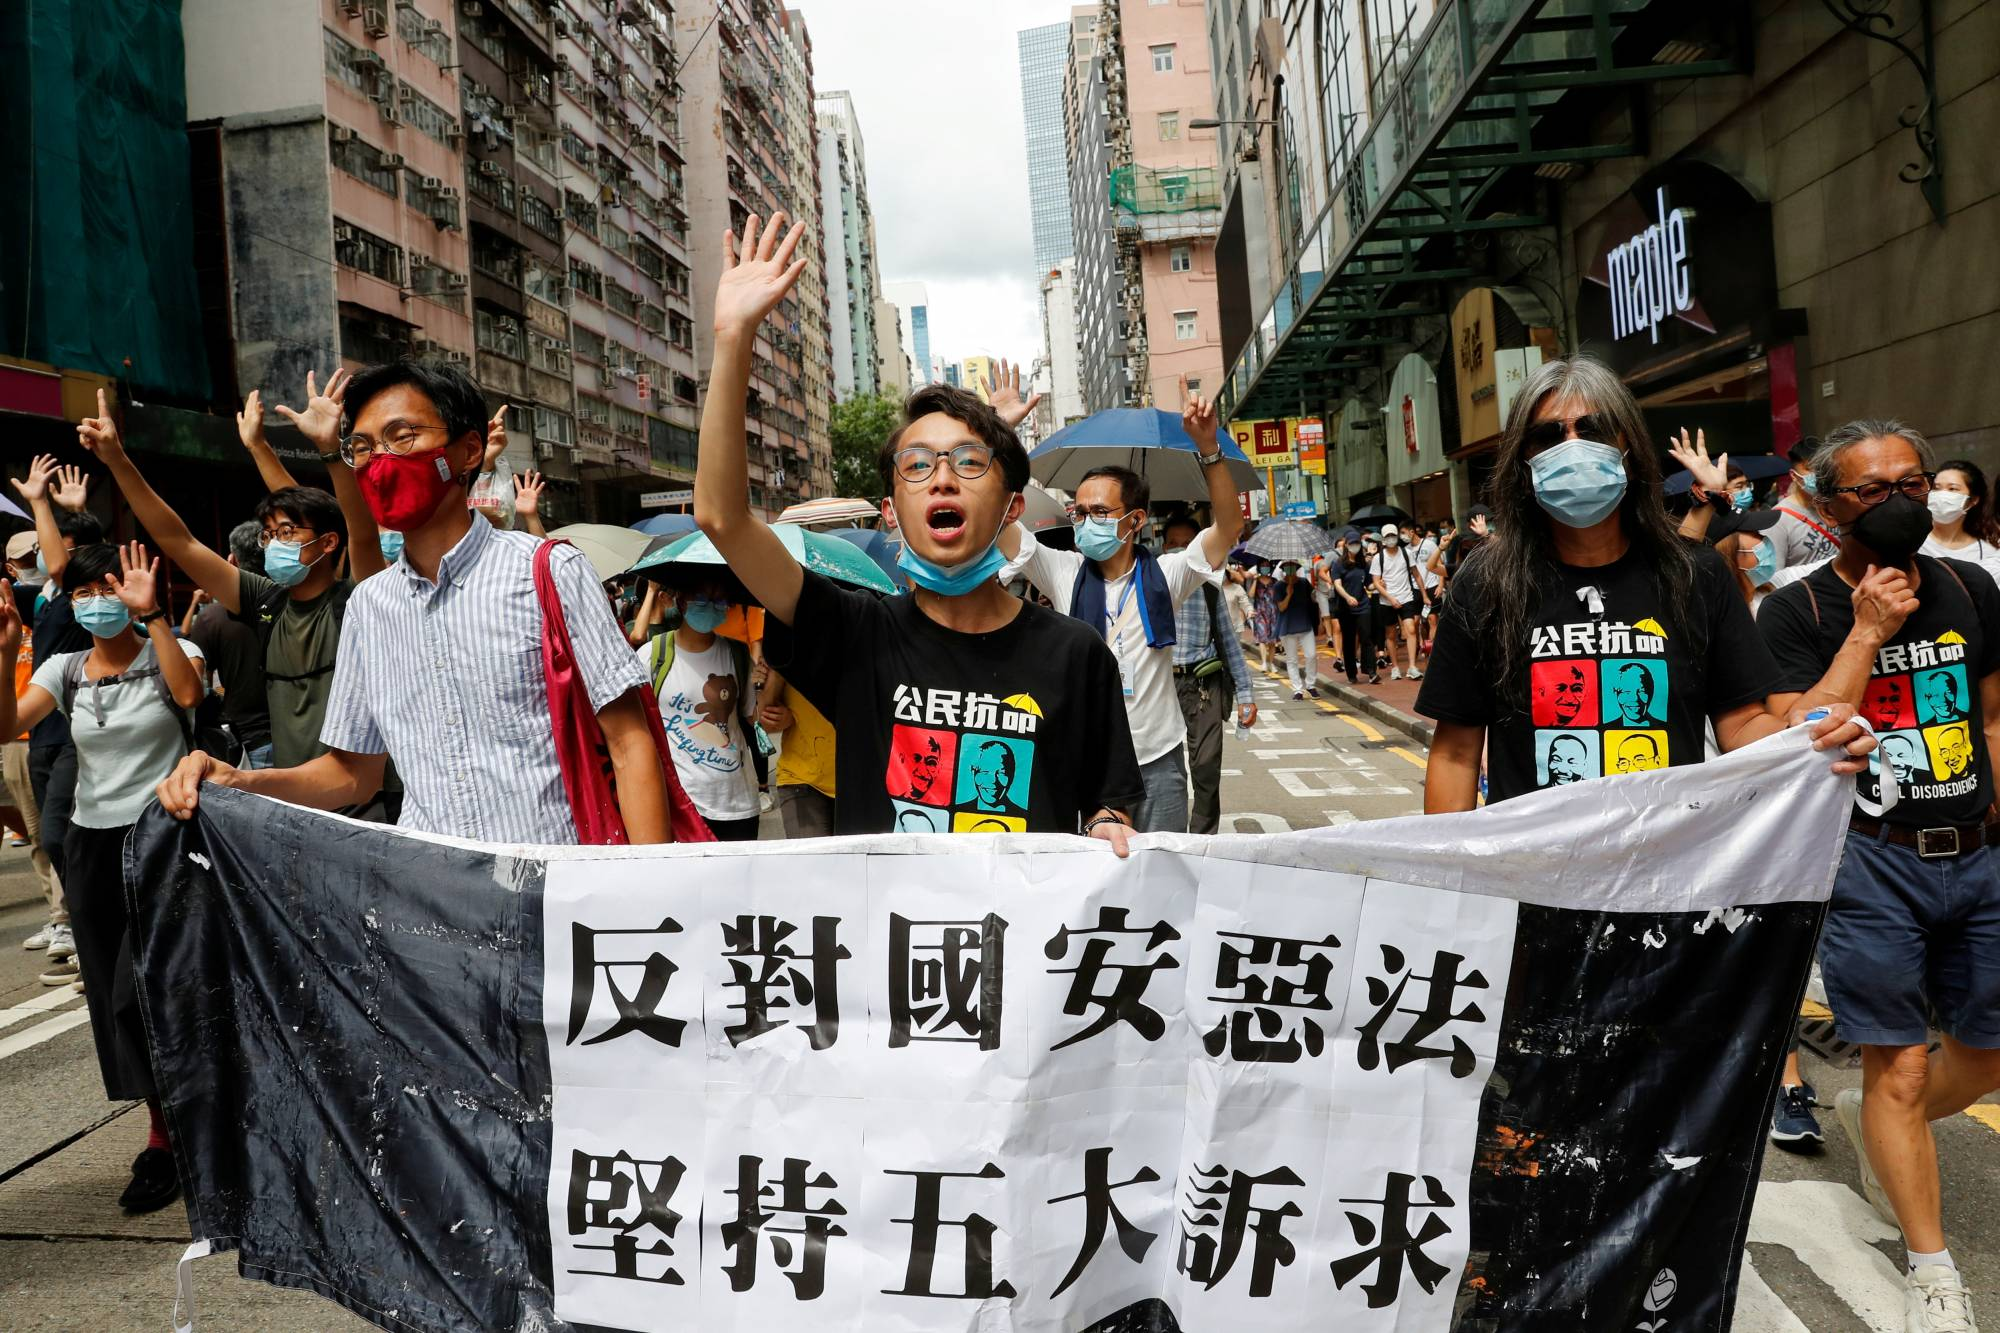 Activists march at the anniversary of Hong Kong's handover to China from Britain in the financial hub on Wednesday.  | REUTERS